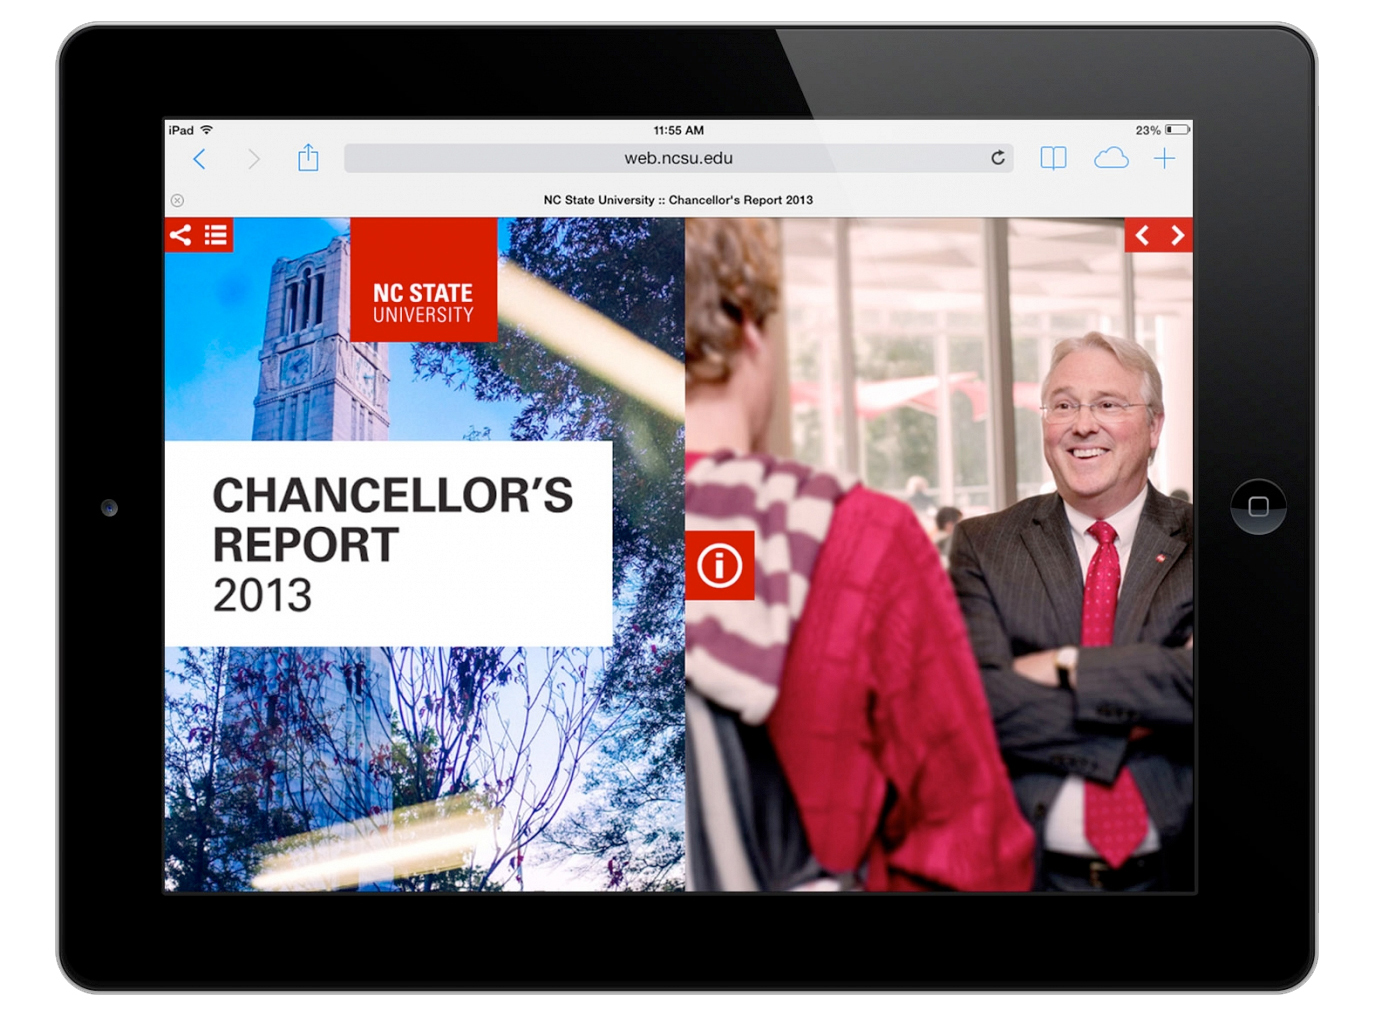 The unusual horizontal navigation of the digital report displays especially well on tablet readers.